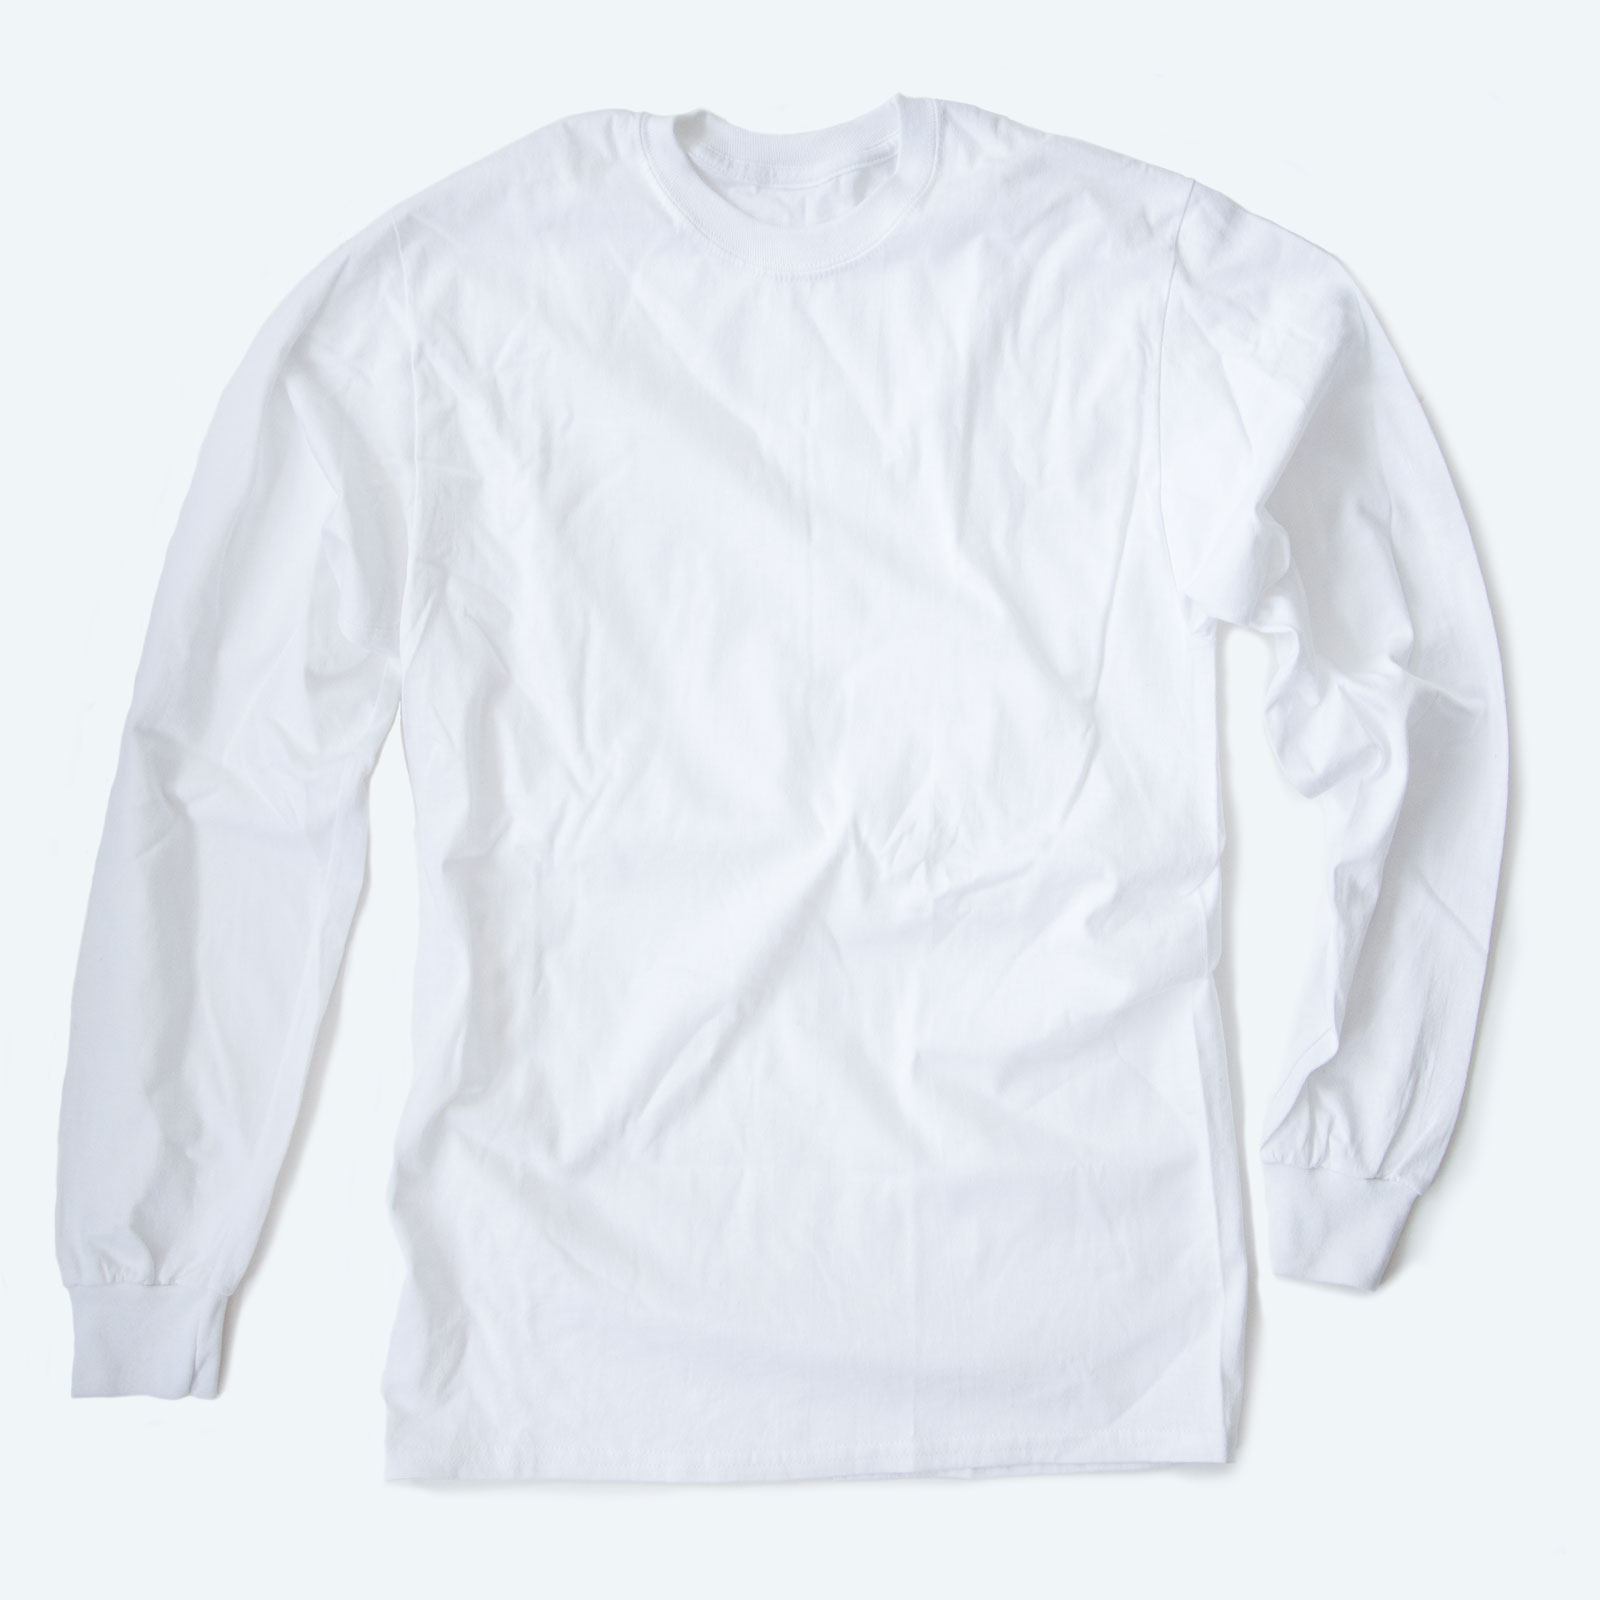 Sell long sleeve shirts online to give pizazz to your campaign.